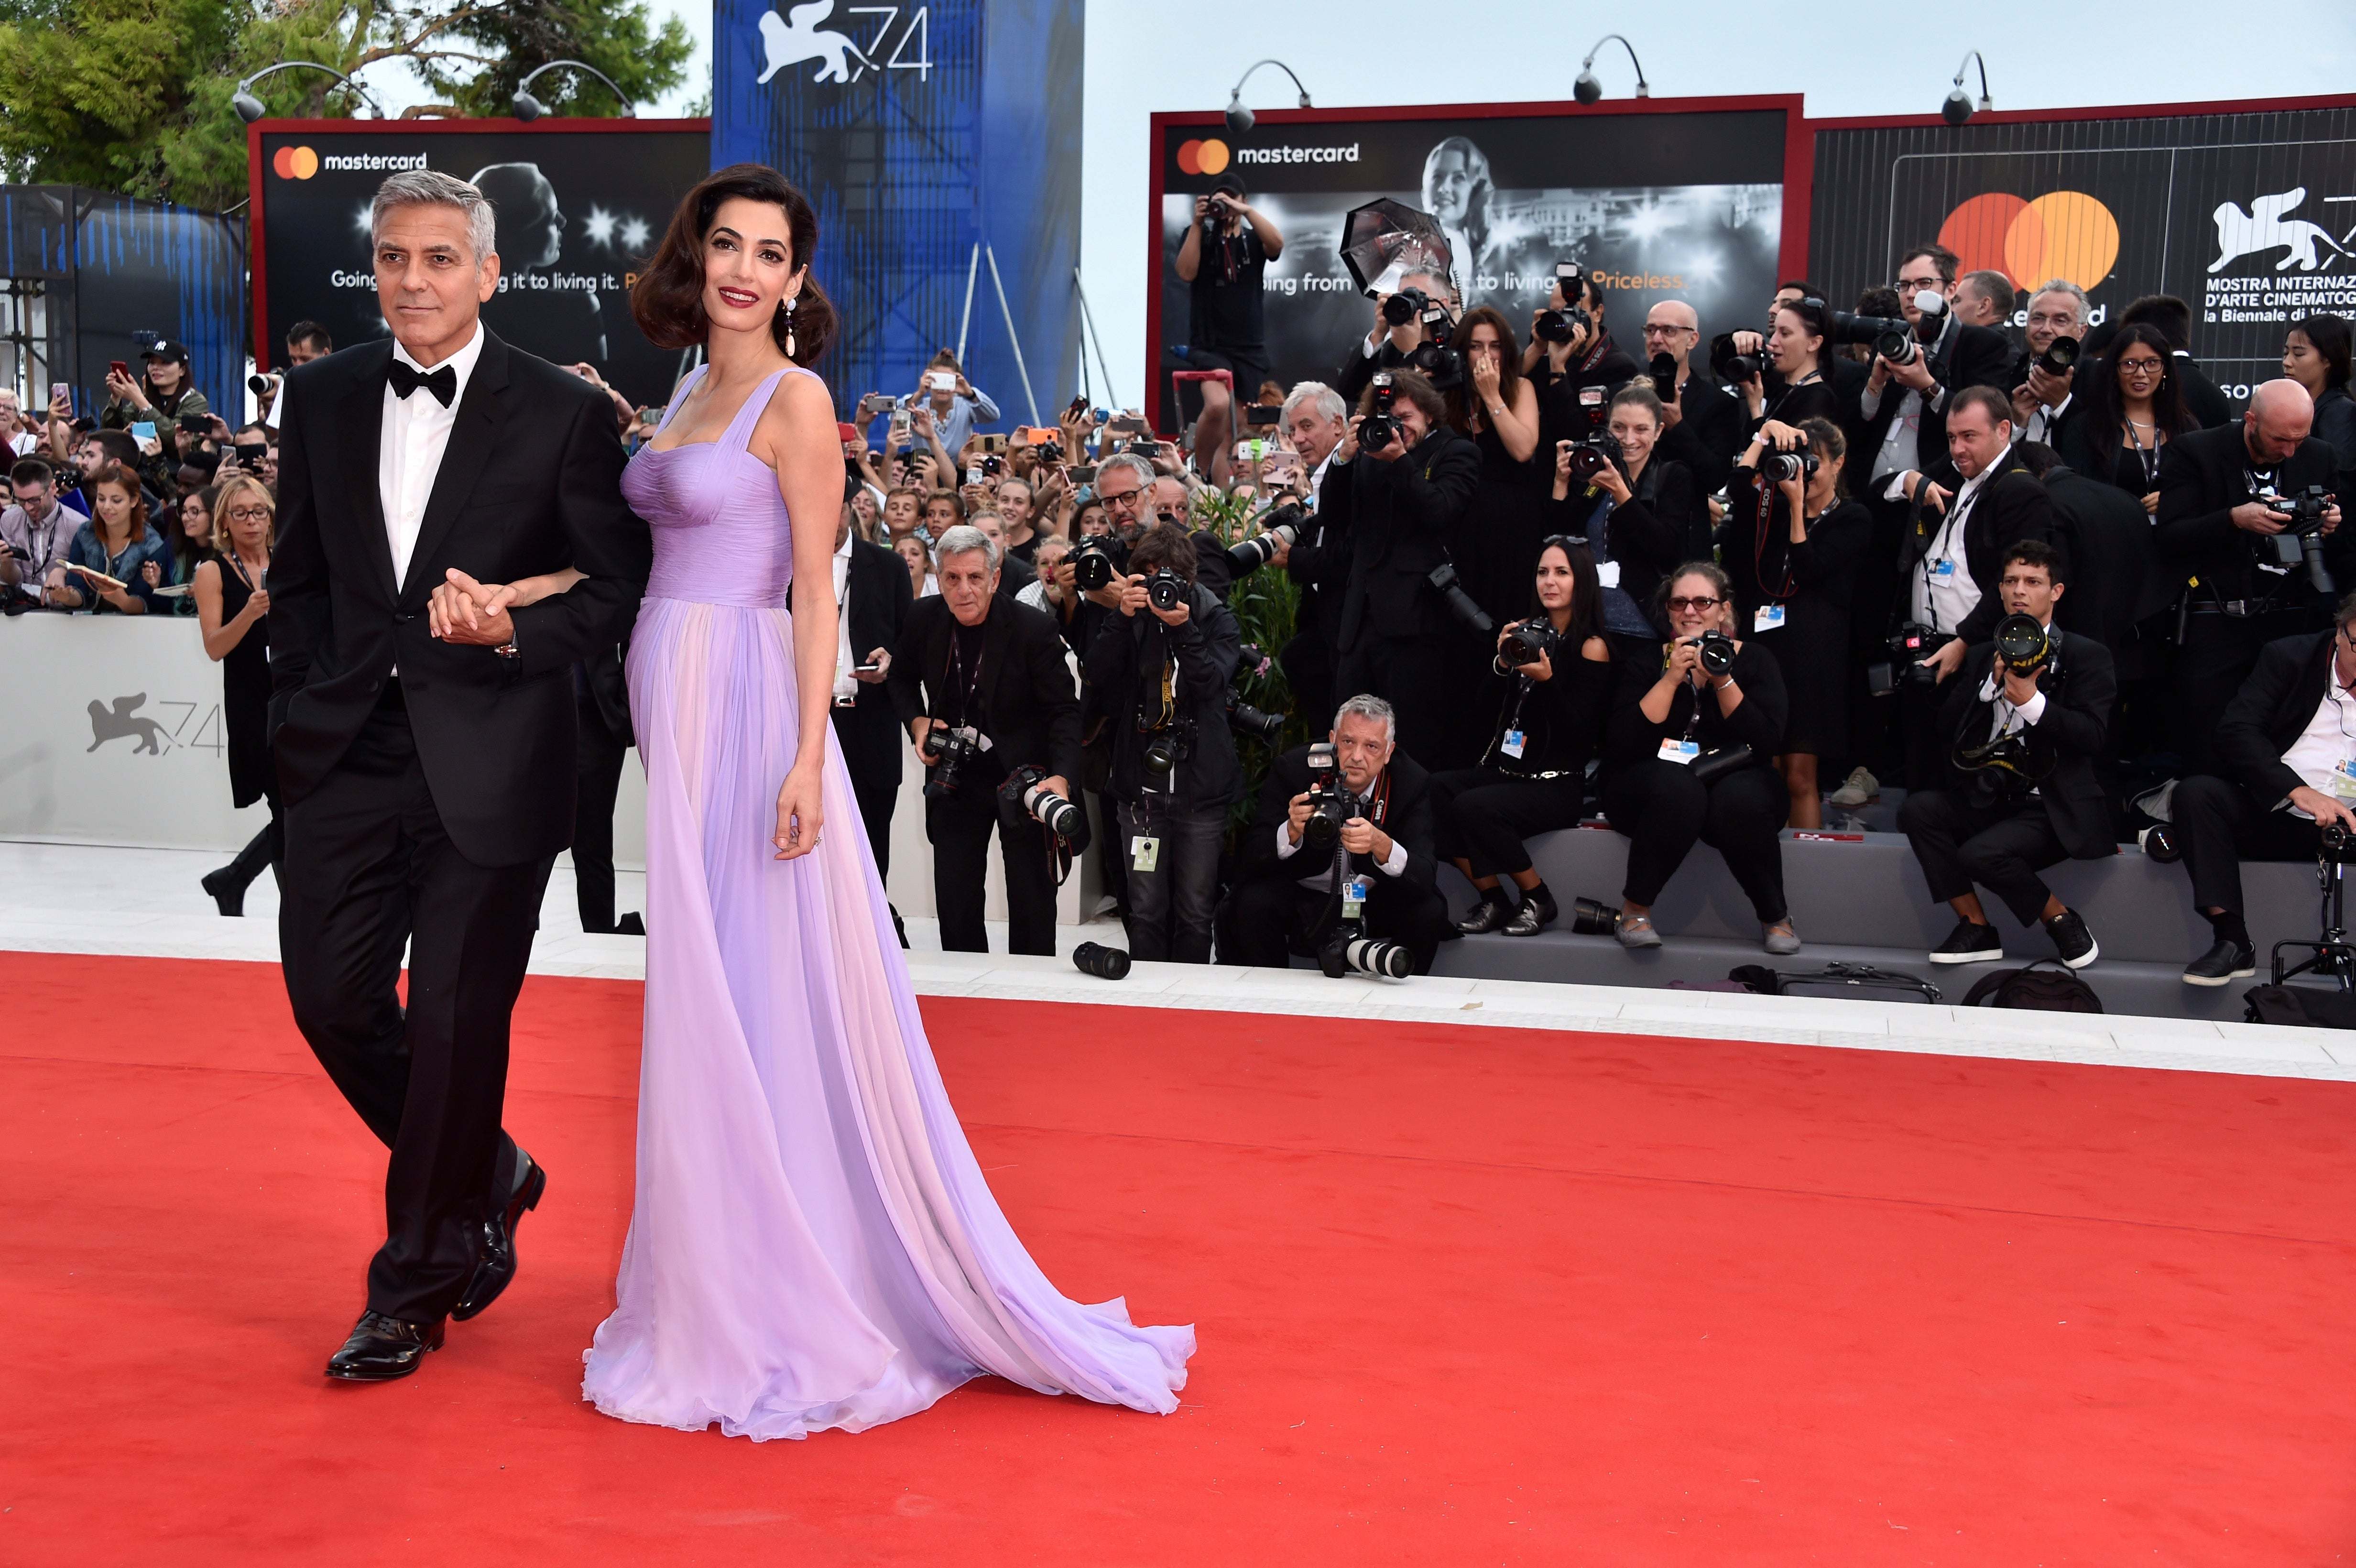 george_clooney_amal_clooney_GettyImages-841896628